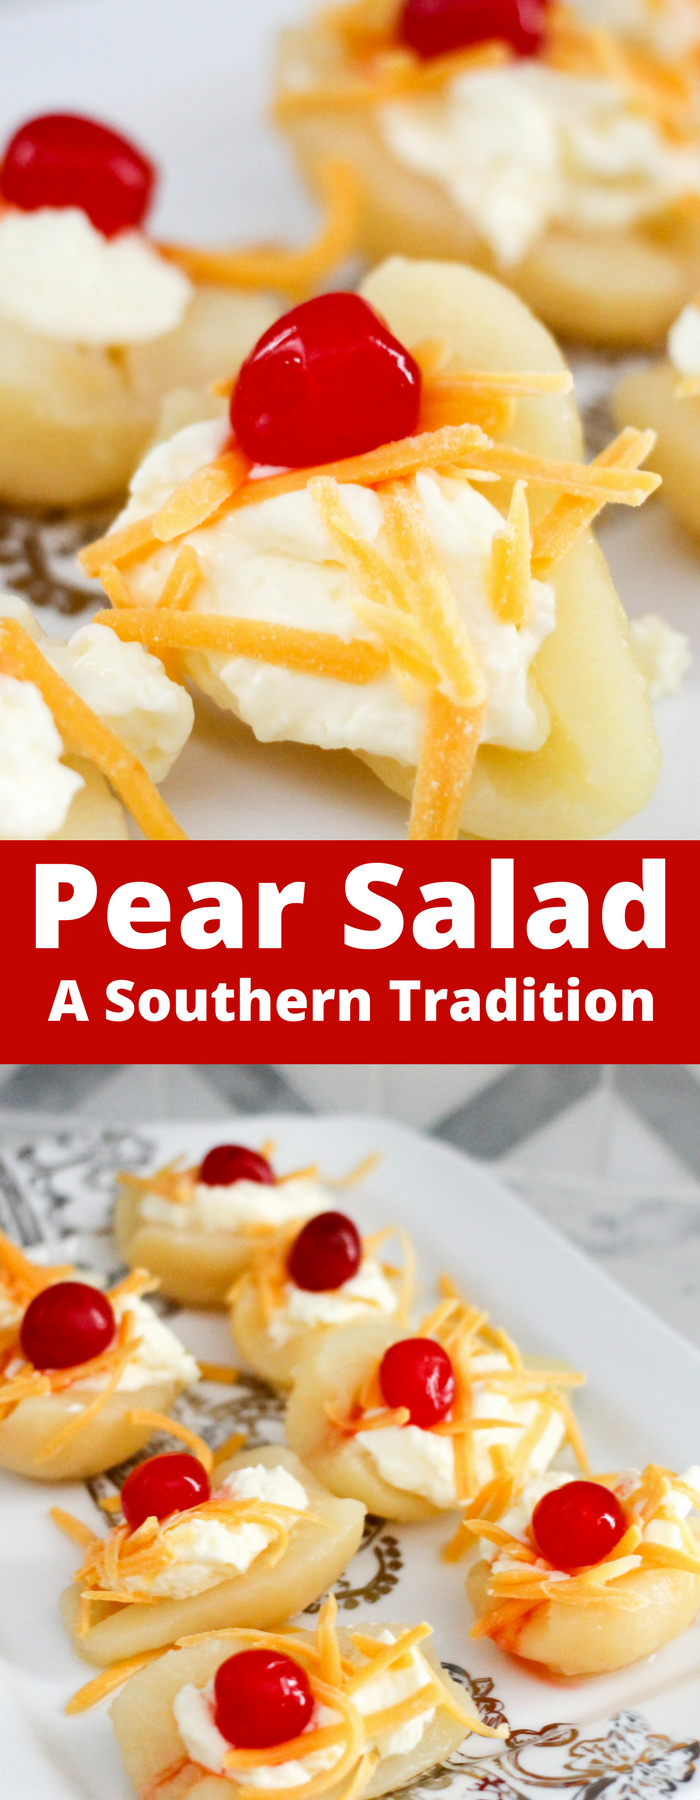 Pear Salad is a classic southern comfort food! Don't knock it until you try it; with only four ingredients so you can whip it up in no time!